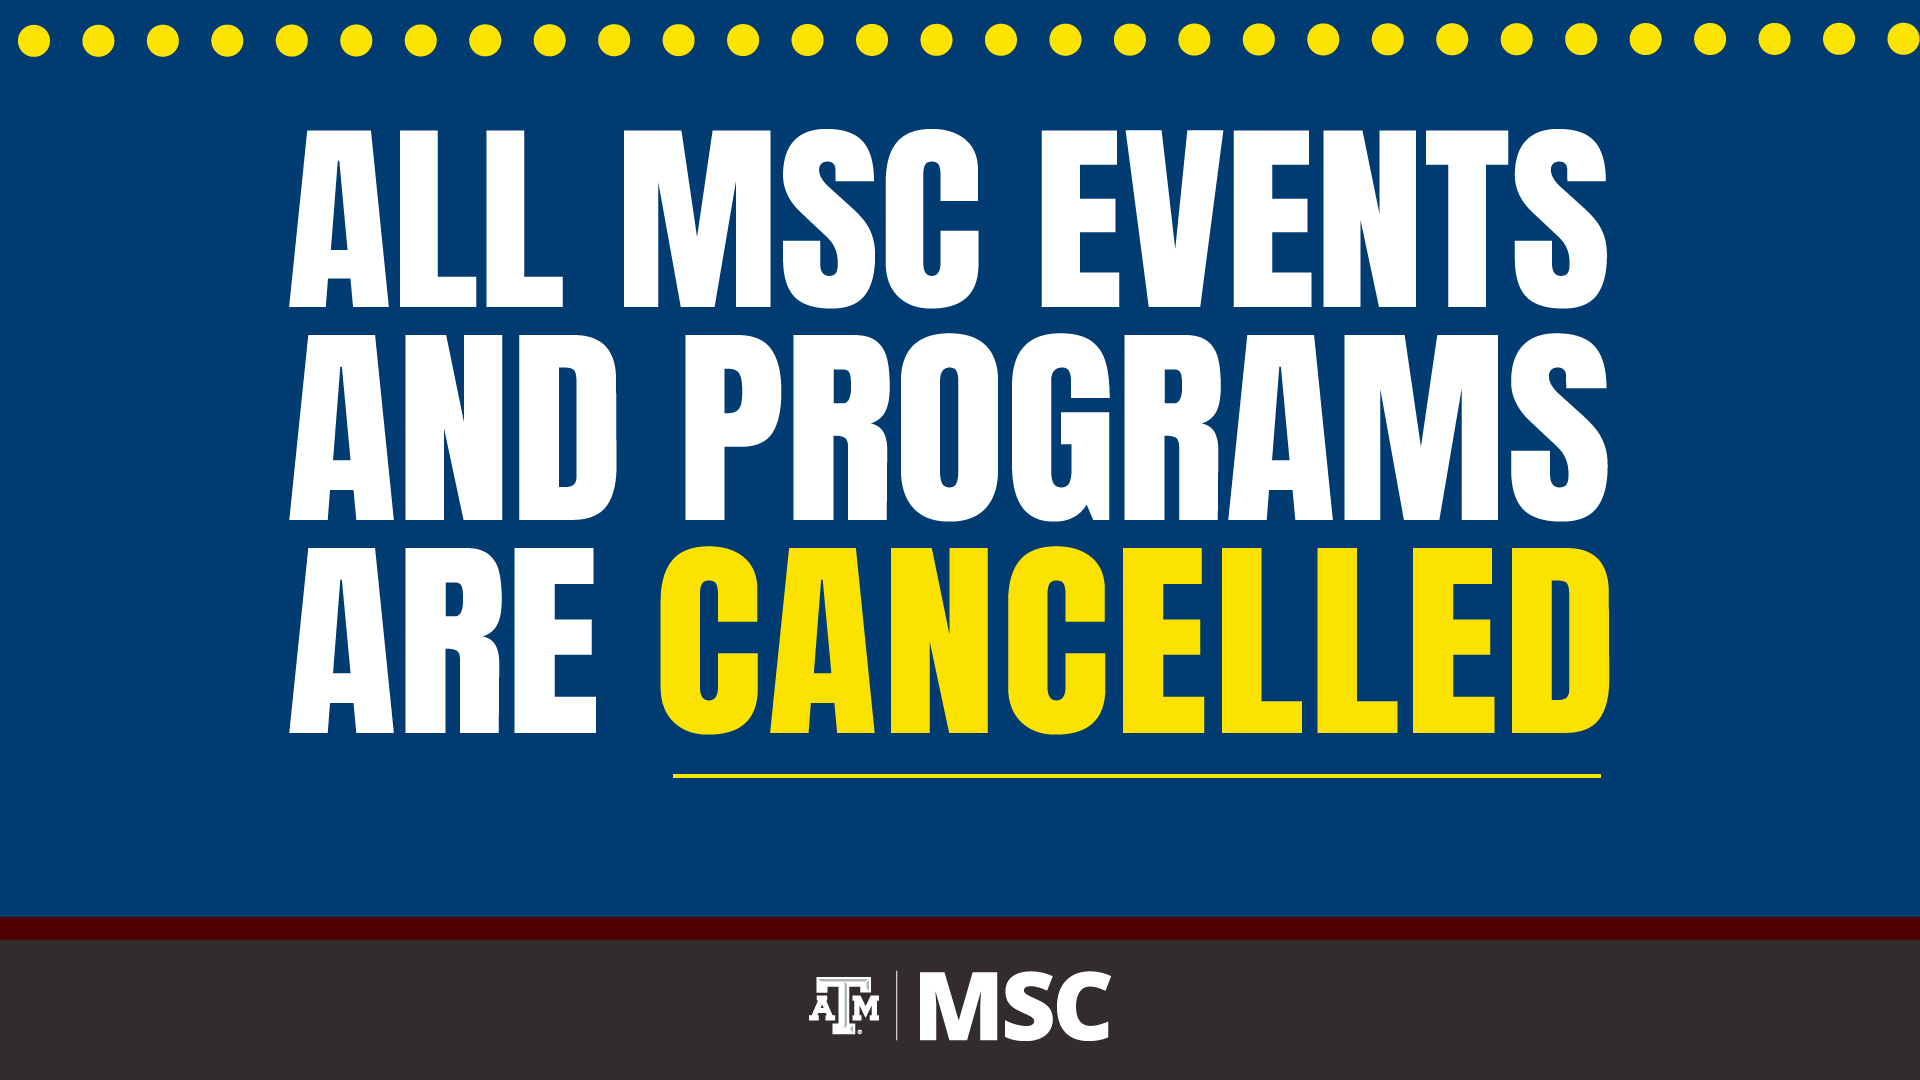 All MSC Event and Programs are Cancelled.